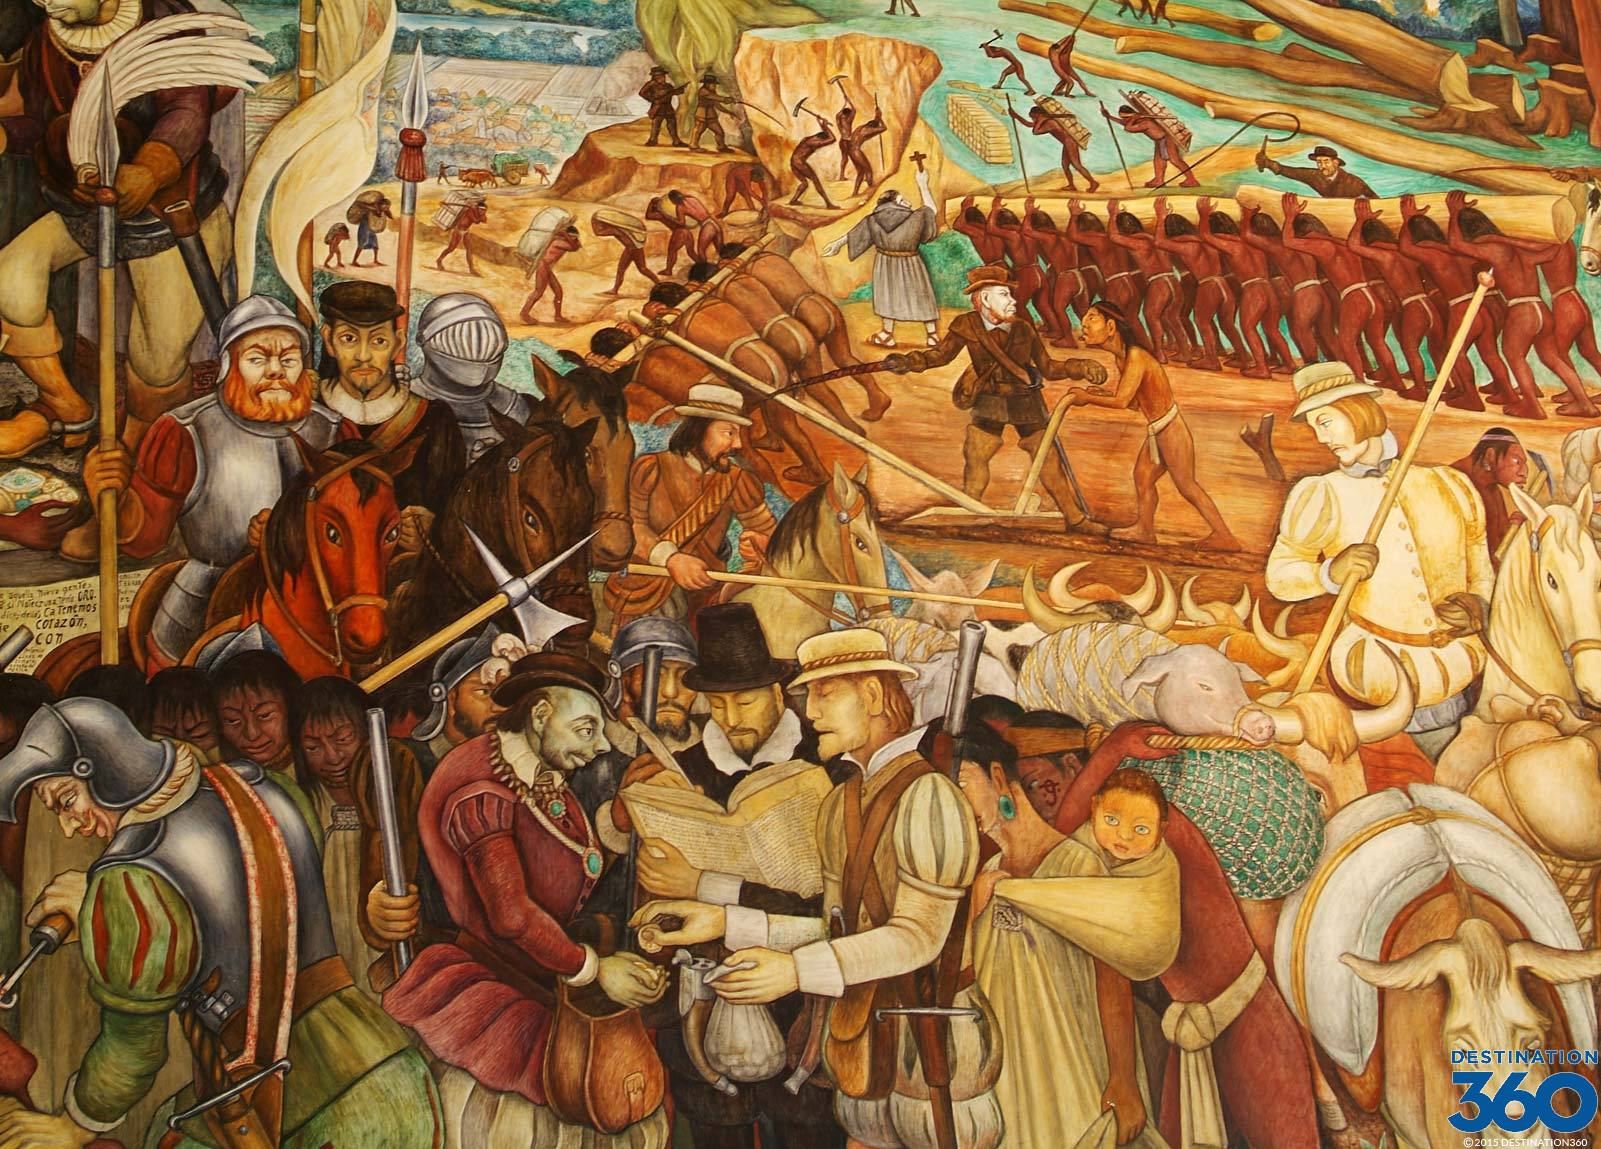 Diego rivera famous murals mexican revolution www for Diego rivera mural